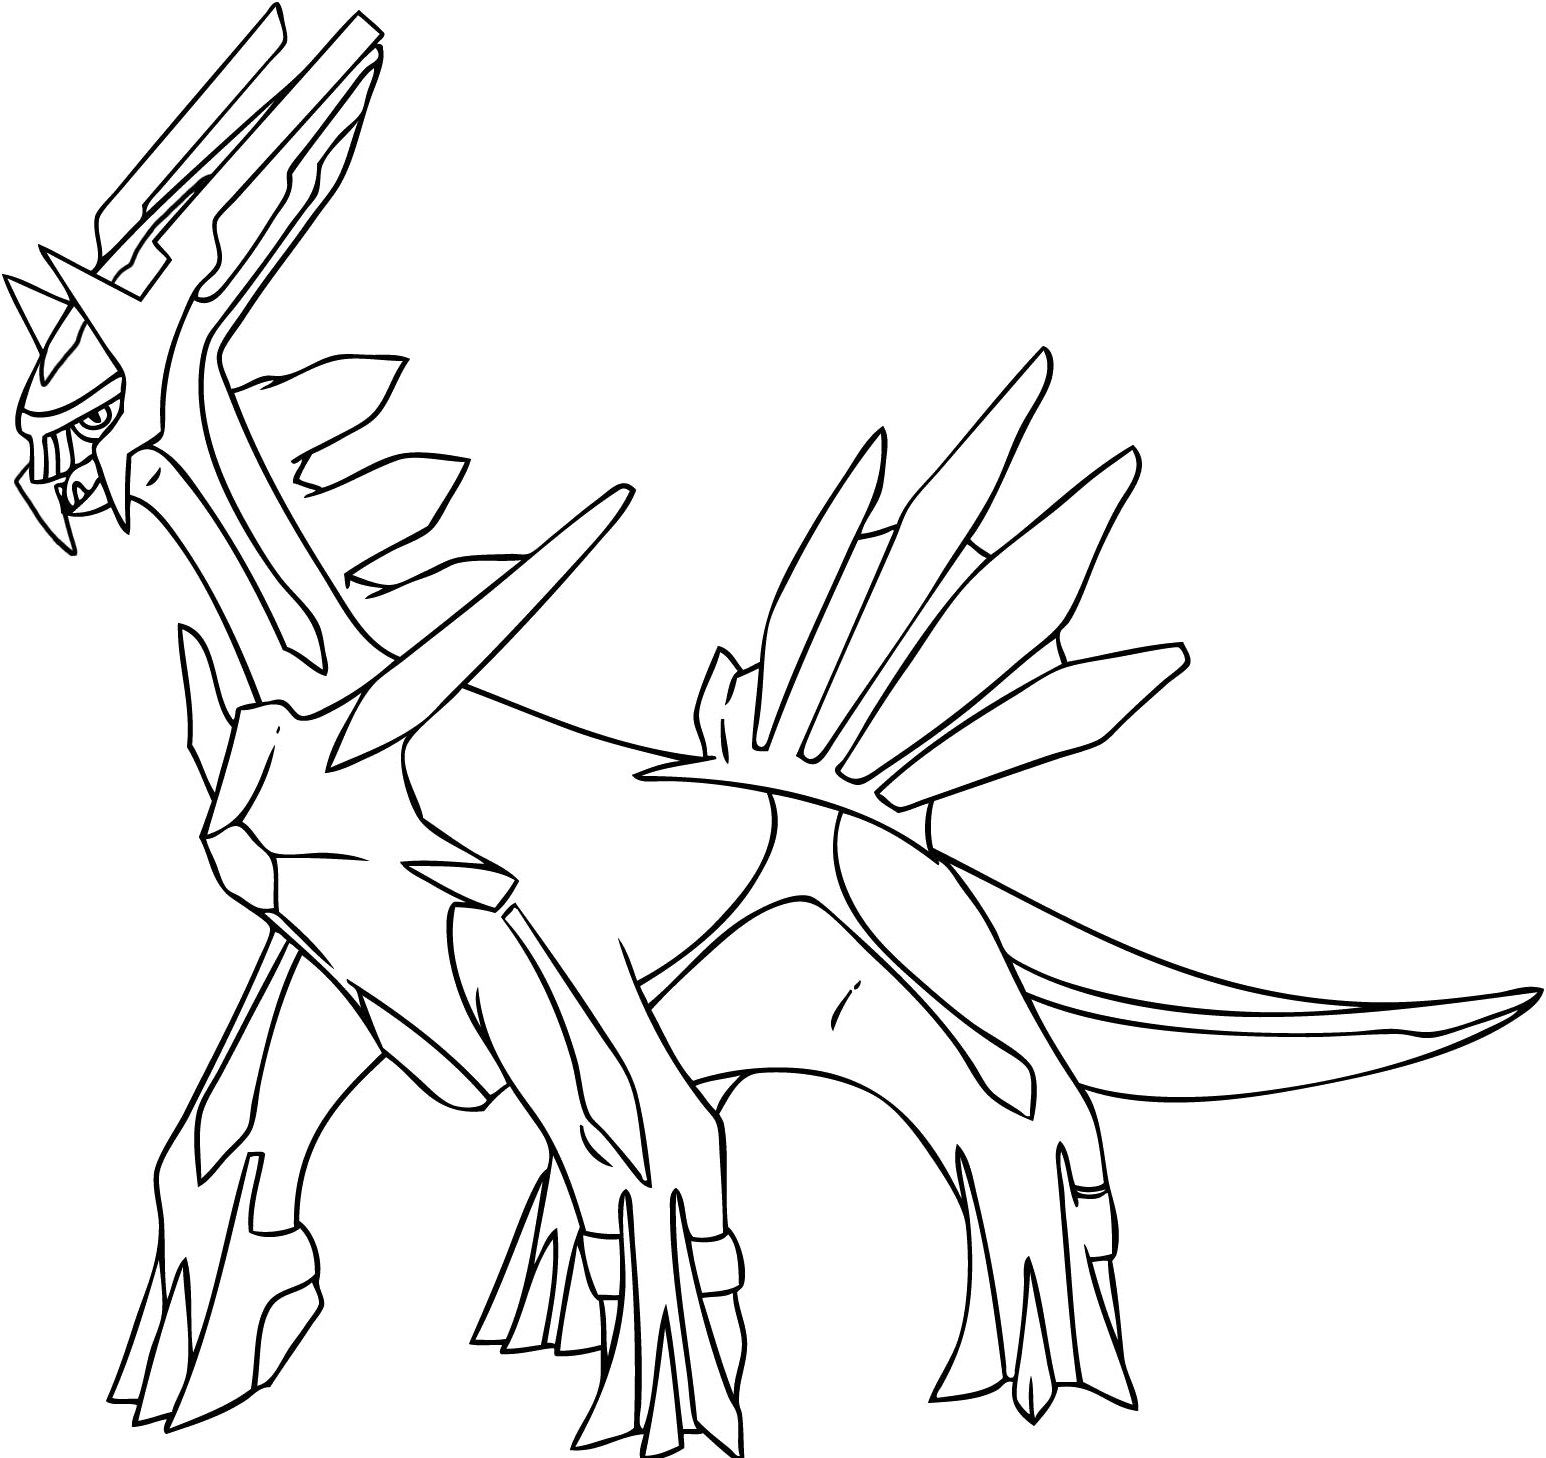 Big Dragon Pokemon Coloring Pages Pokemon Coloring Pokemon Coloring Pages Dragon Coloring Page